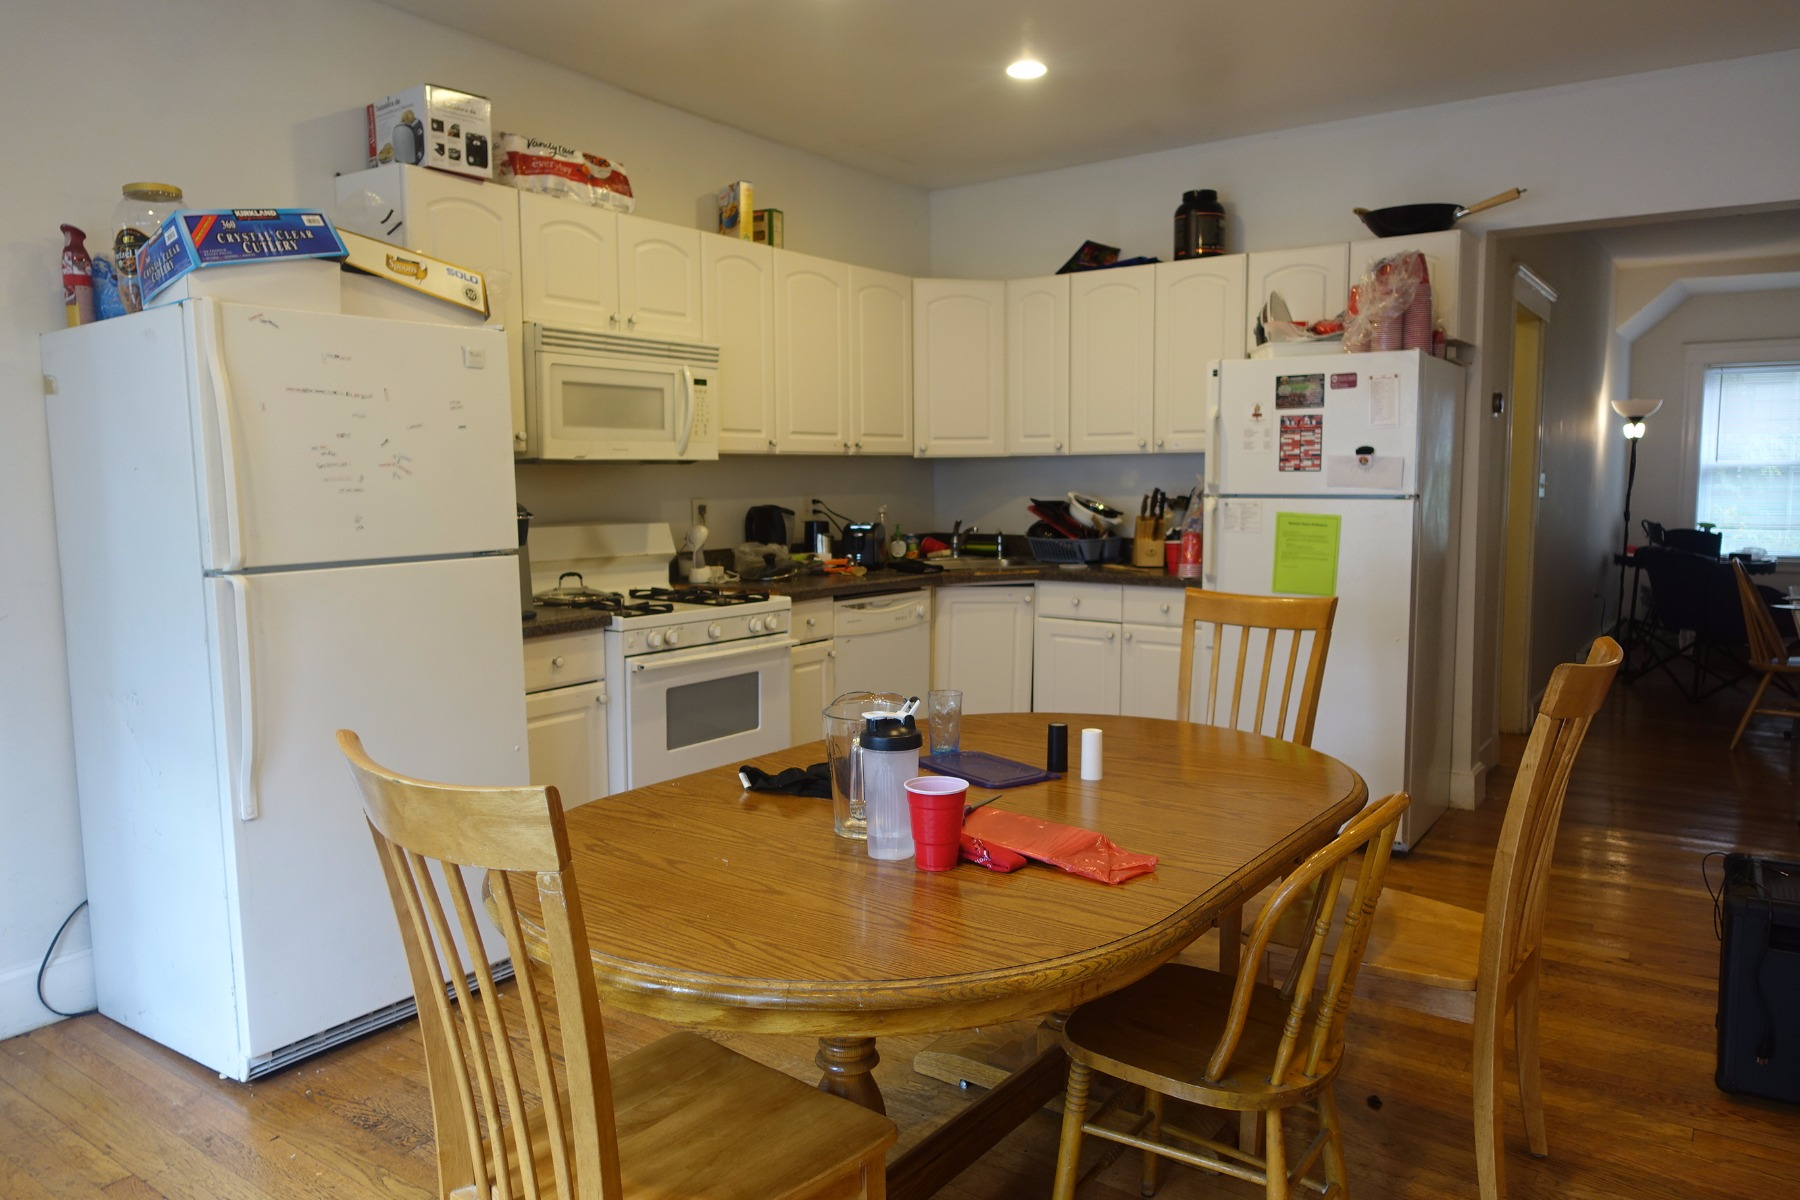 6bed 2.5bath w/ 2 car parking and small dog permitted! On top of BC!